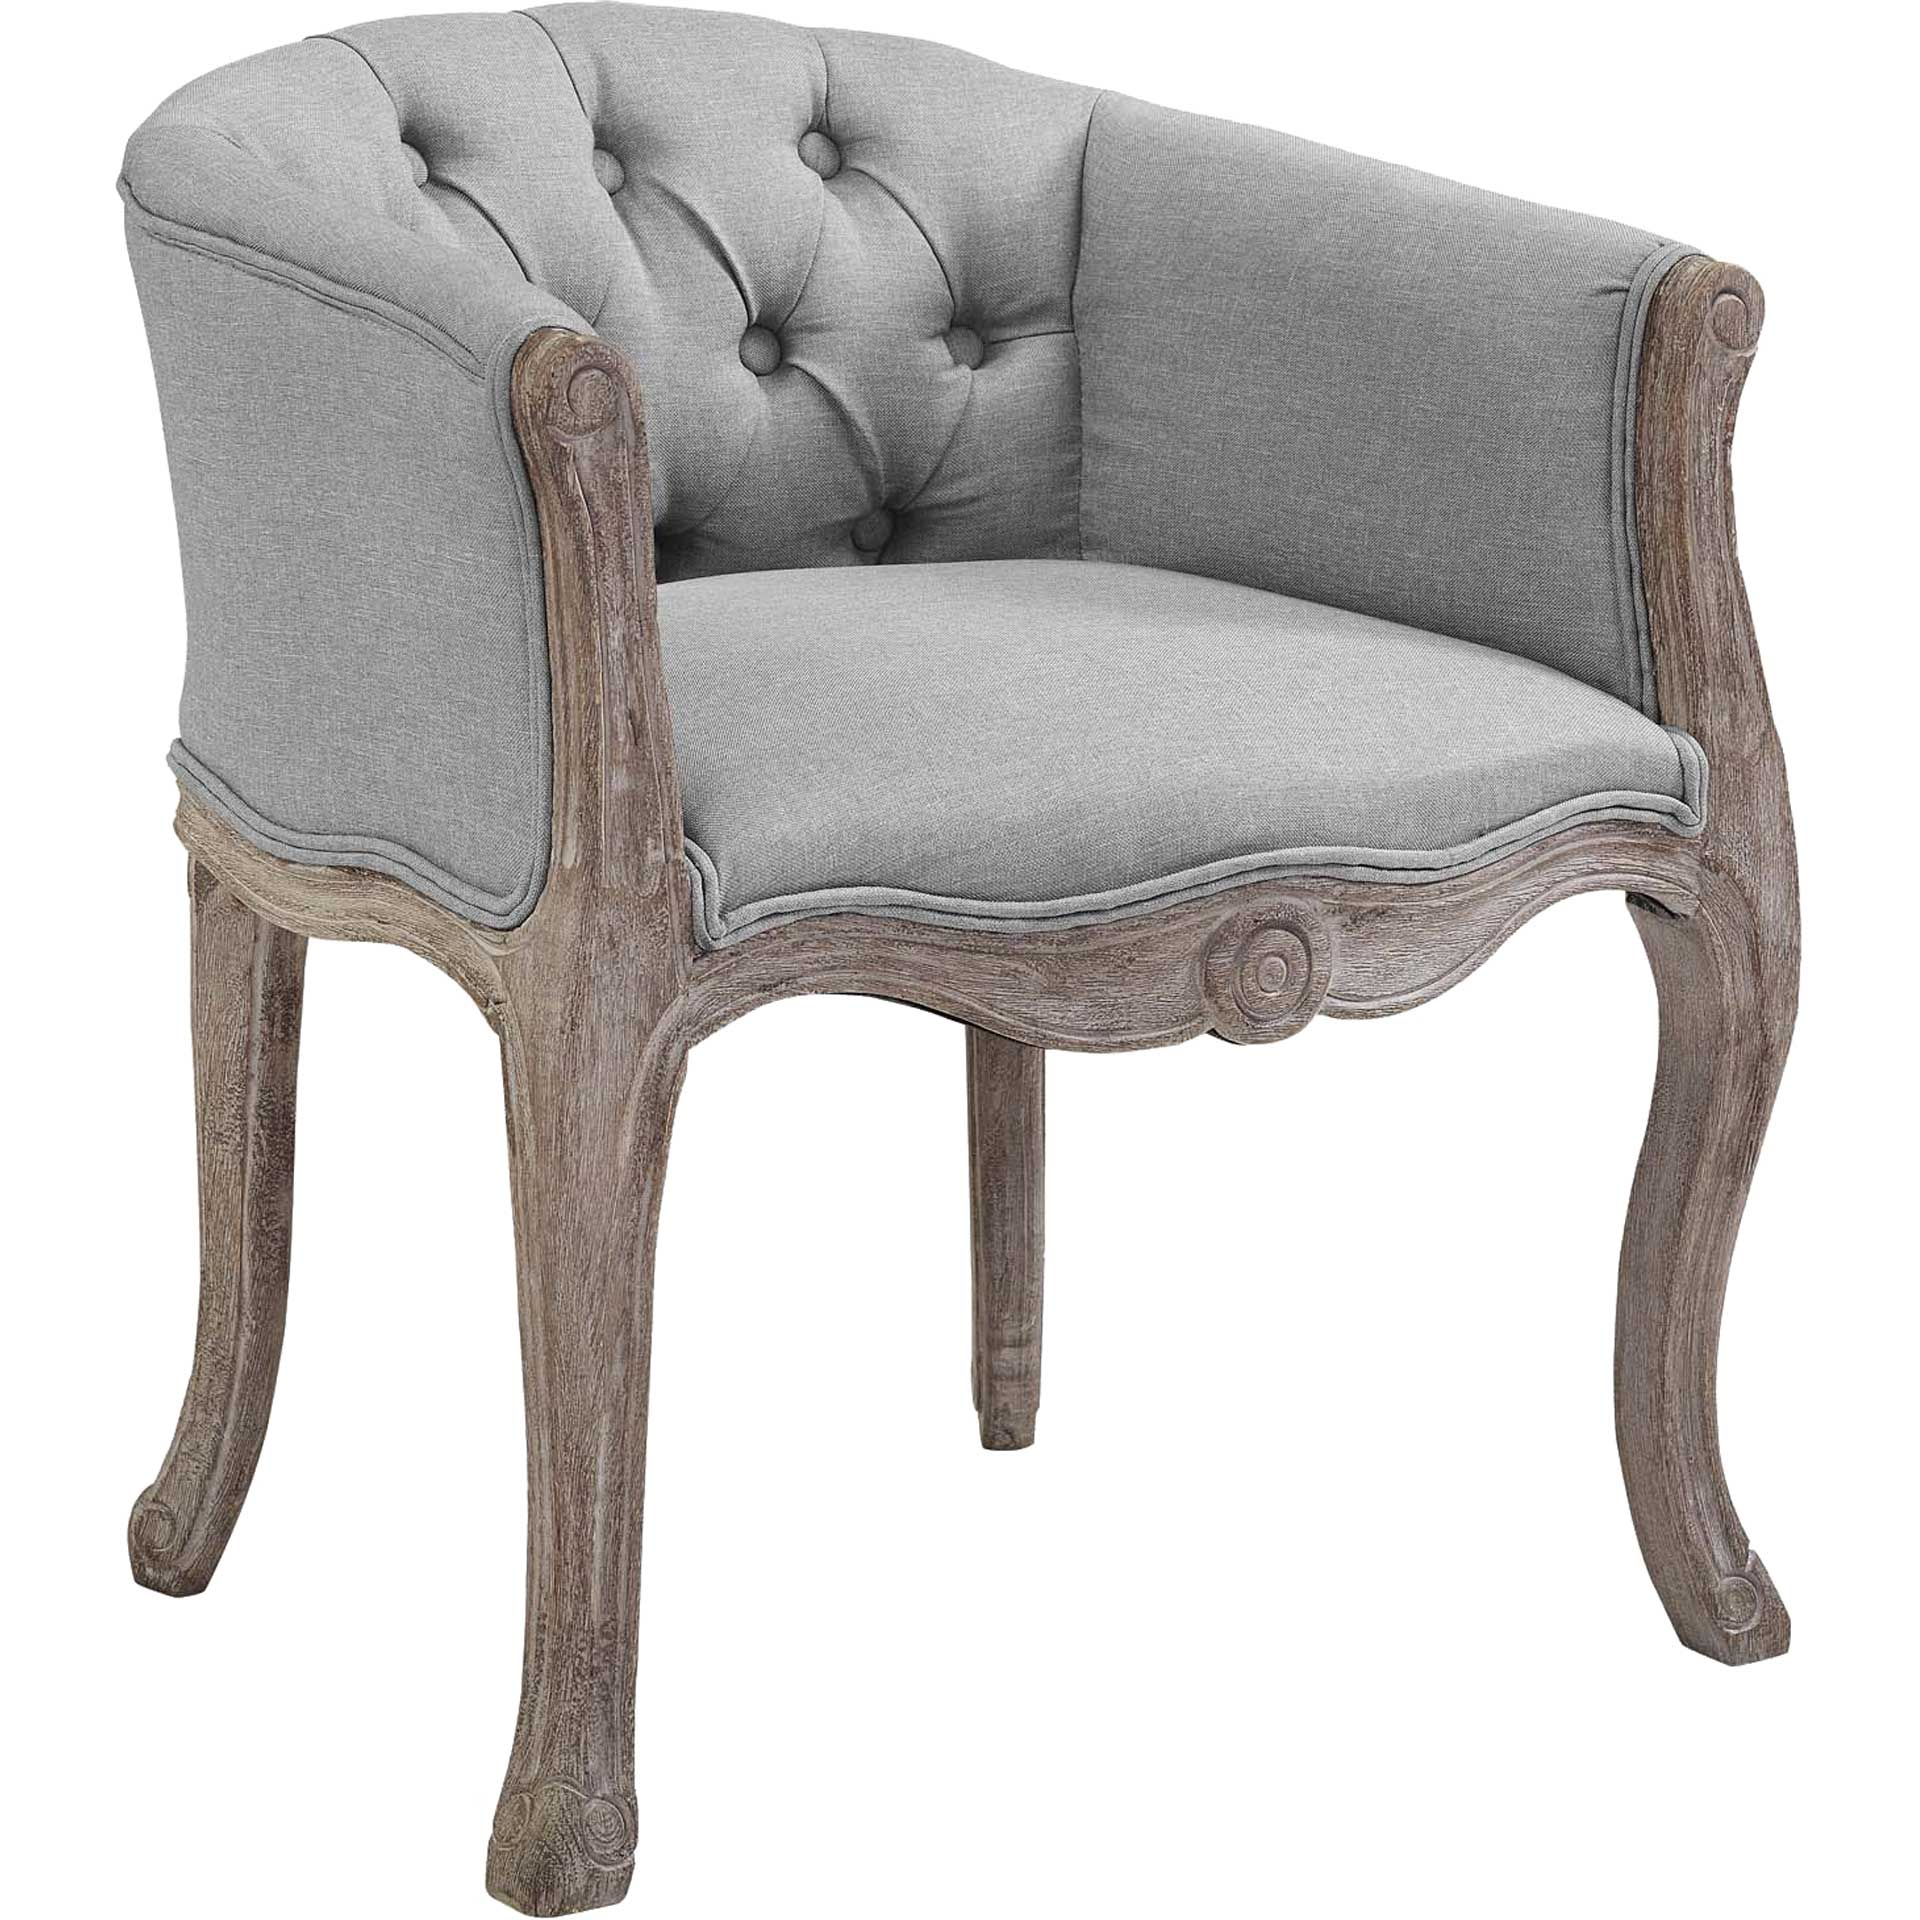 Class Upholstered Fabric Dining Armchair Light Gray